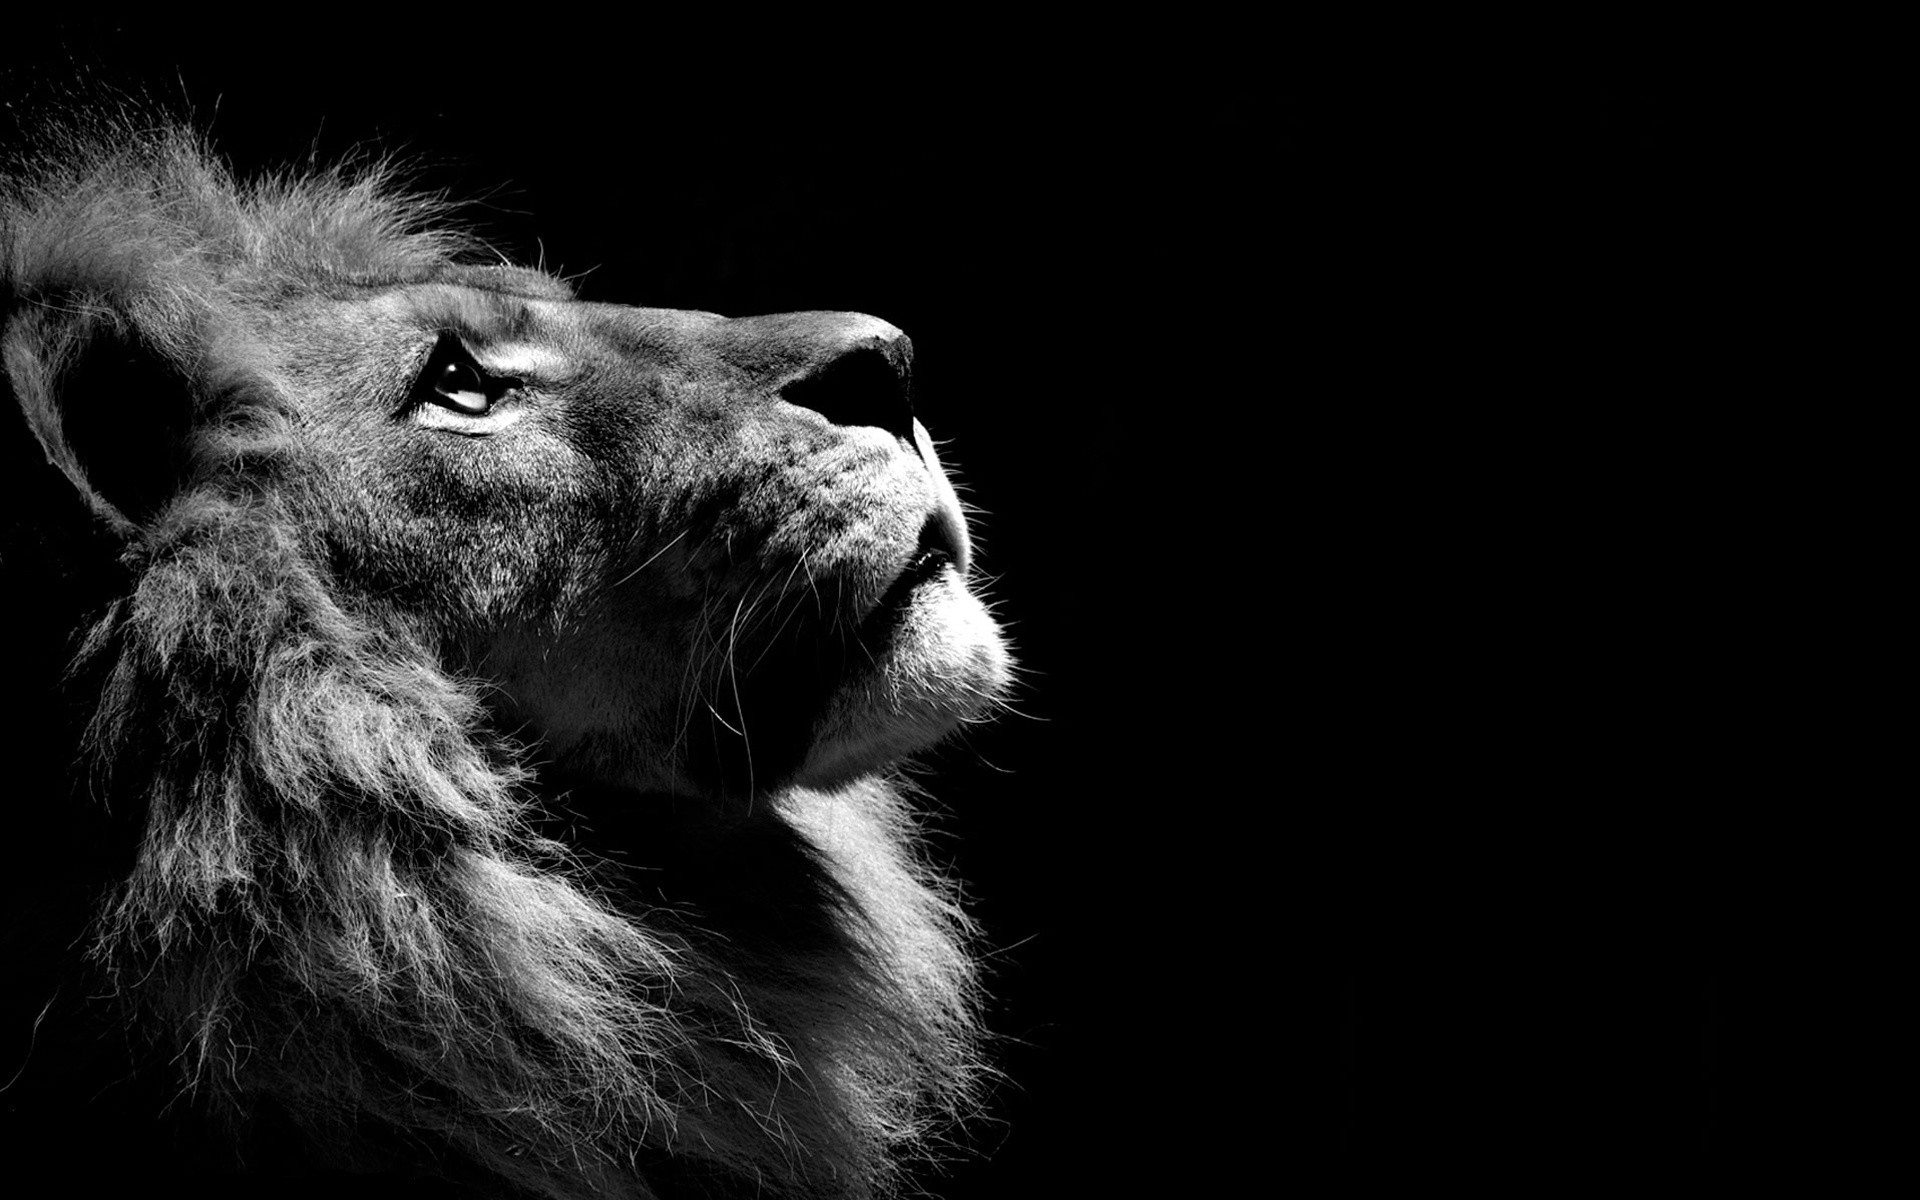 Astonishing Lion Wallpaper Desktop 68 Images Download Free Architecture Designs Embacsunscenecom